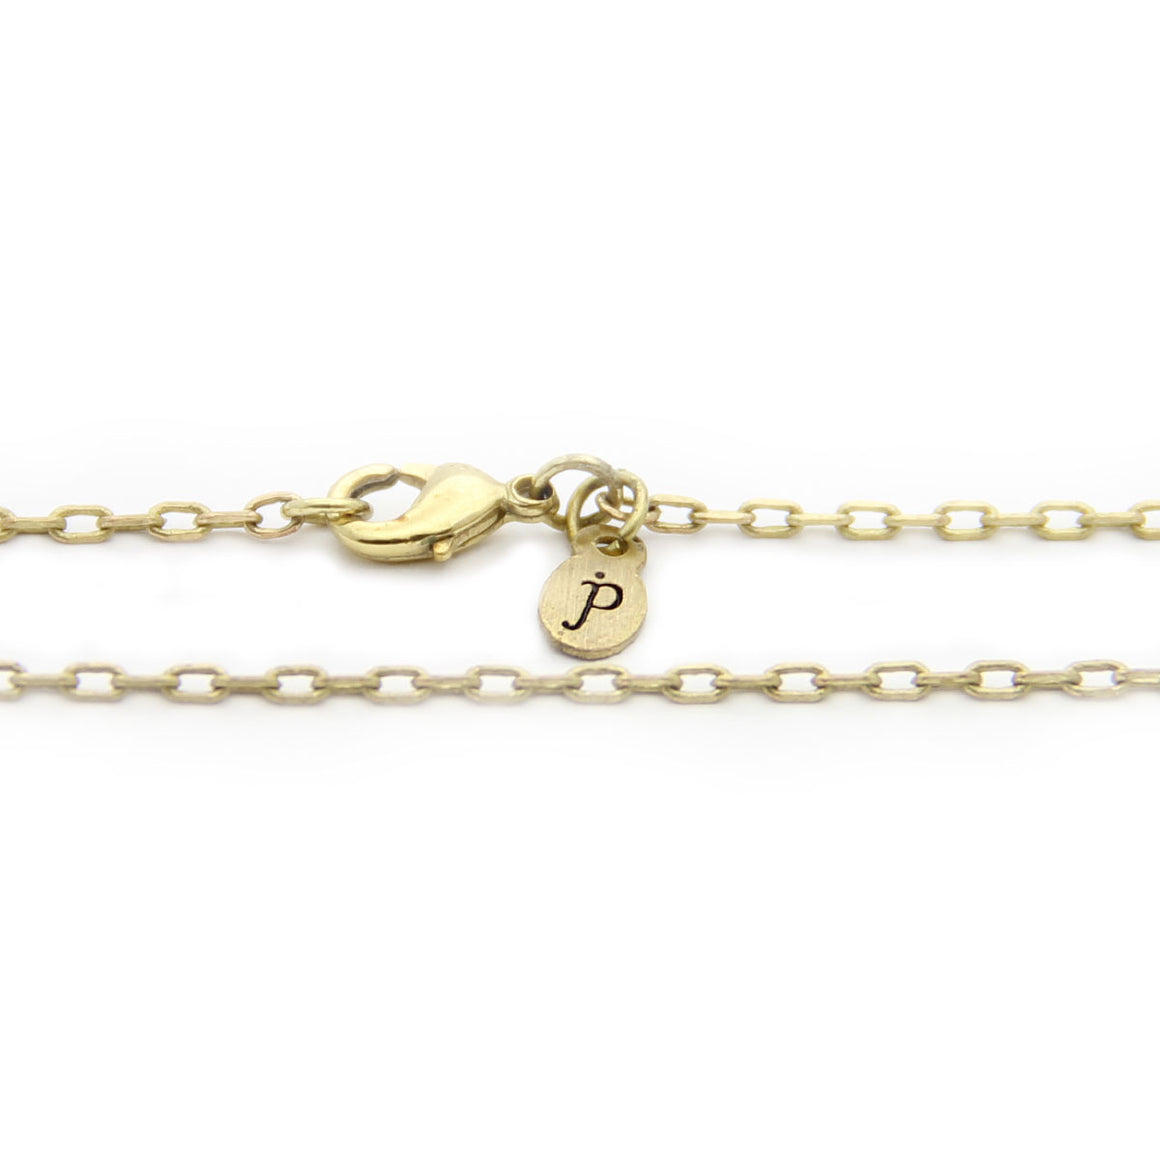 brass cable chain necklace, design your own jewelry, chain necklace, jewelry designer jenny present®